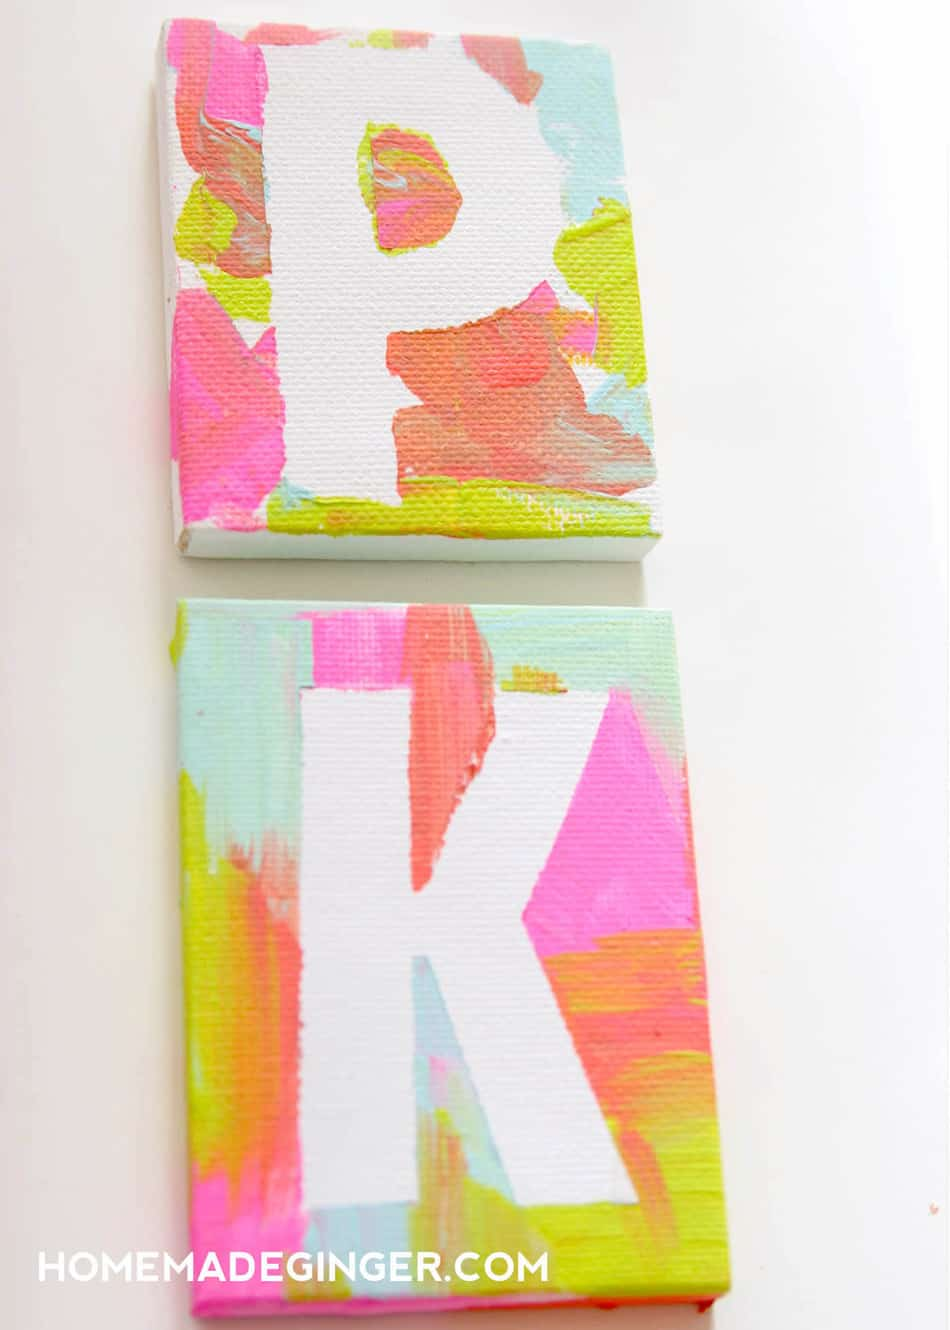 Delightful Canvas Craft Ideas For Kids Part - 10: If You Need Some Kids Art Ideas, Make These Mini Canvas Magnets! This Is